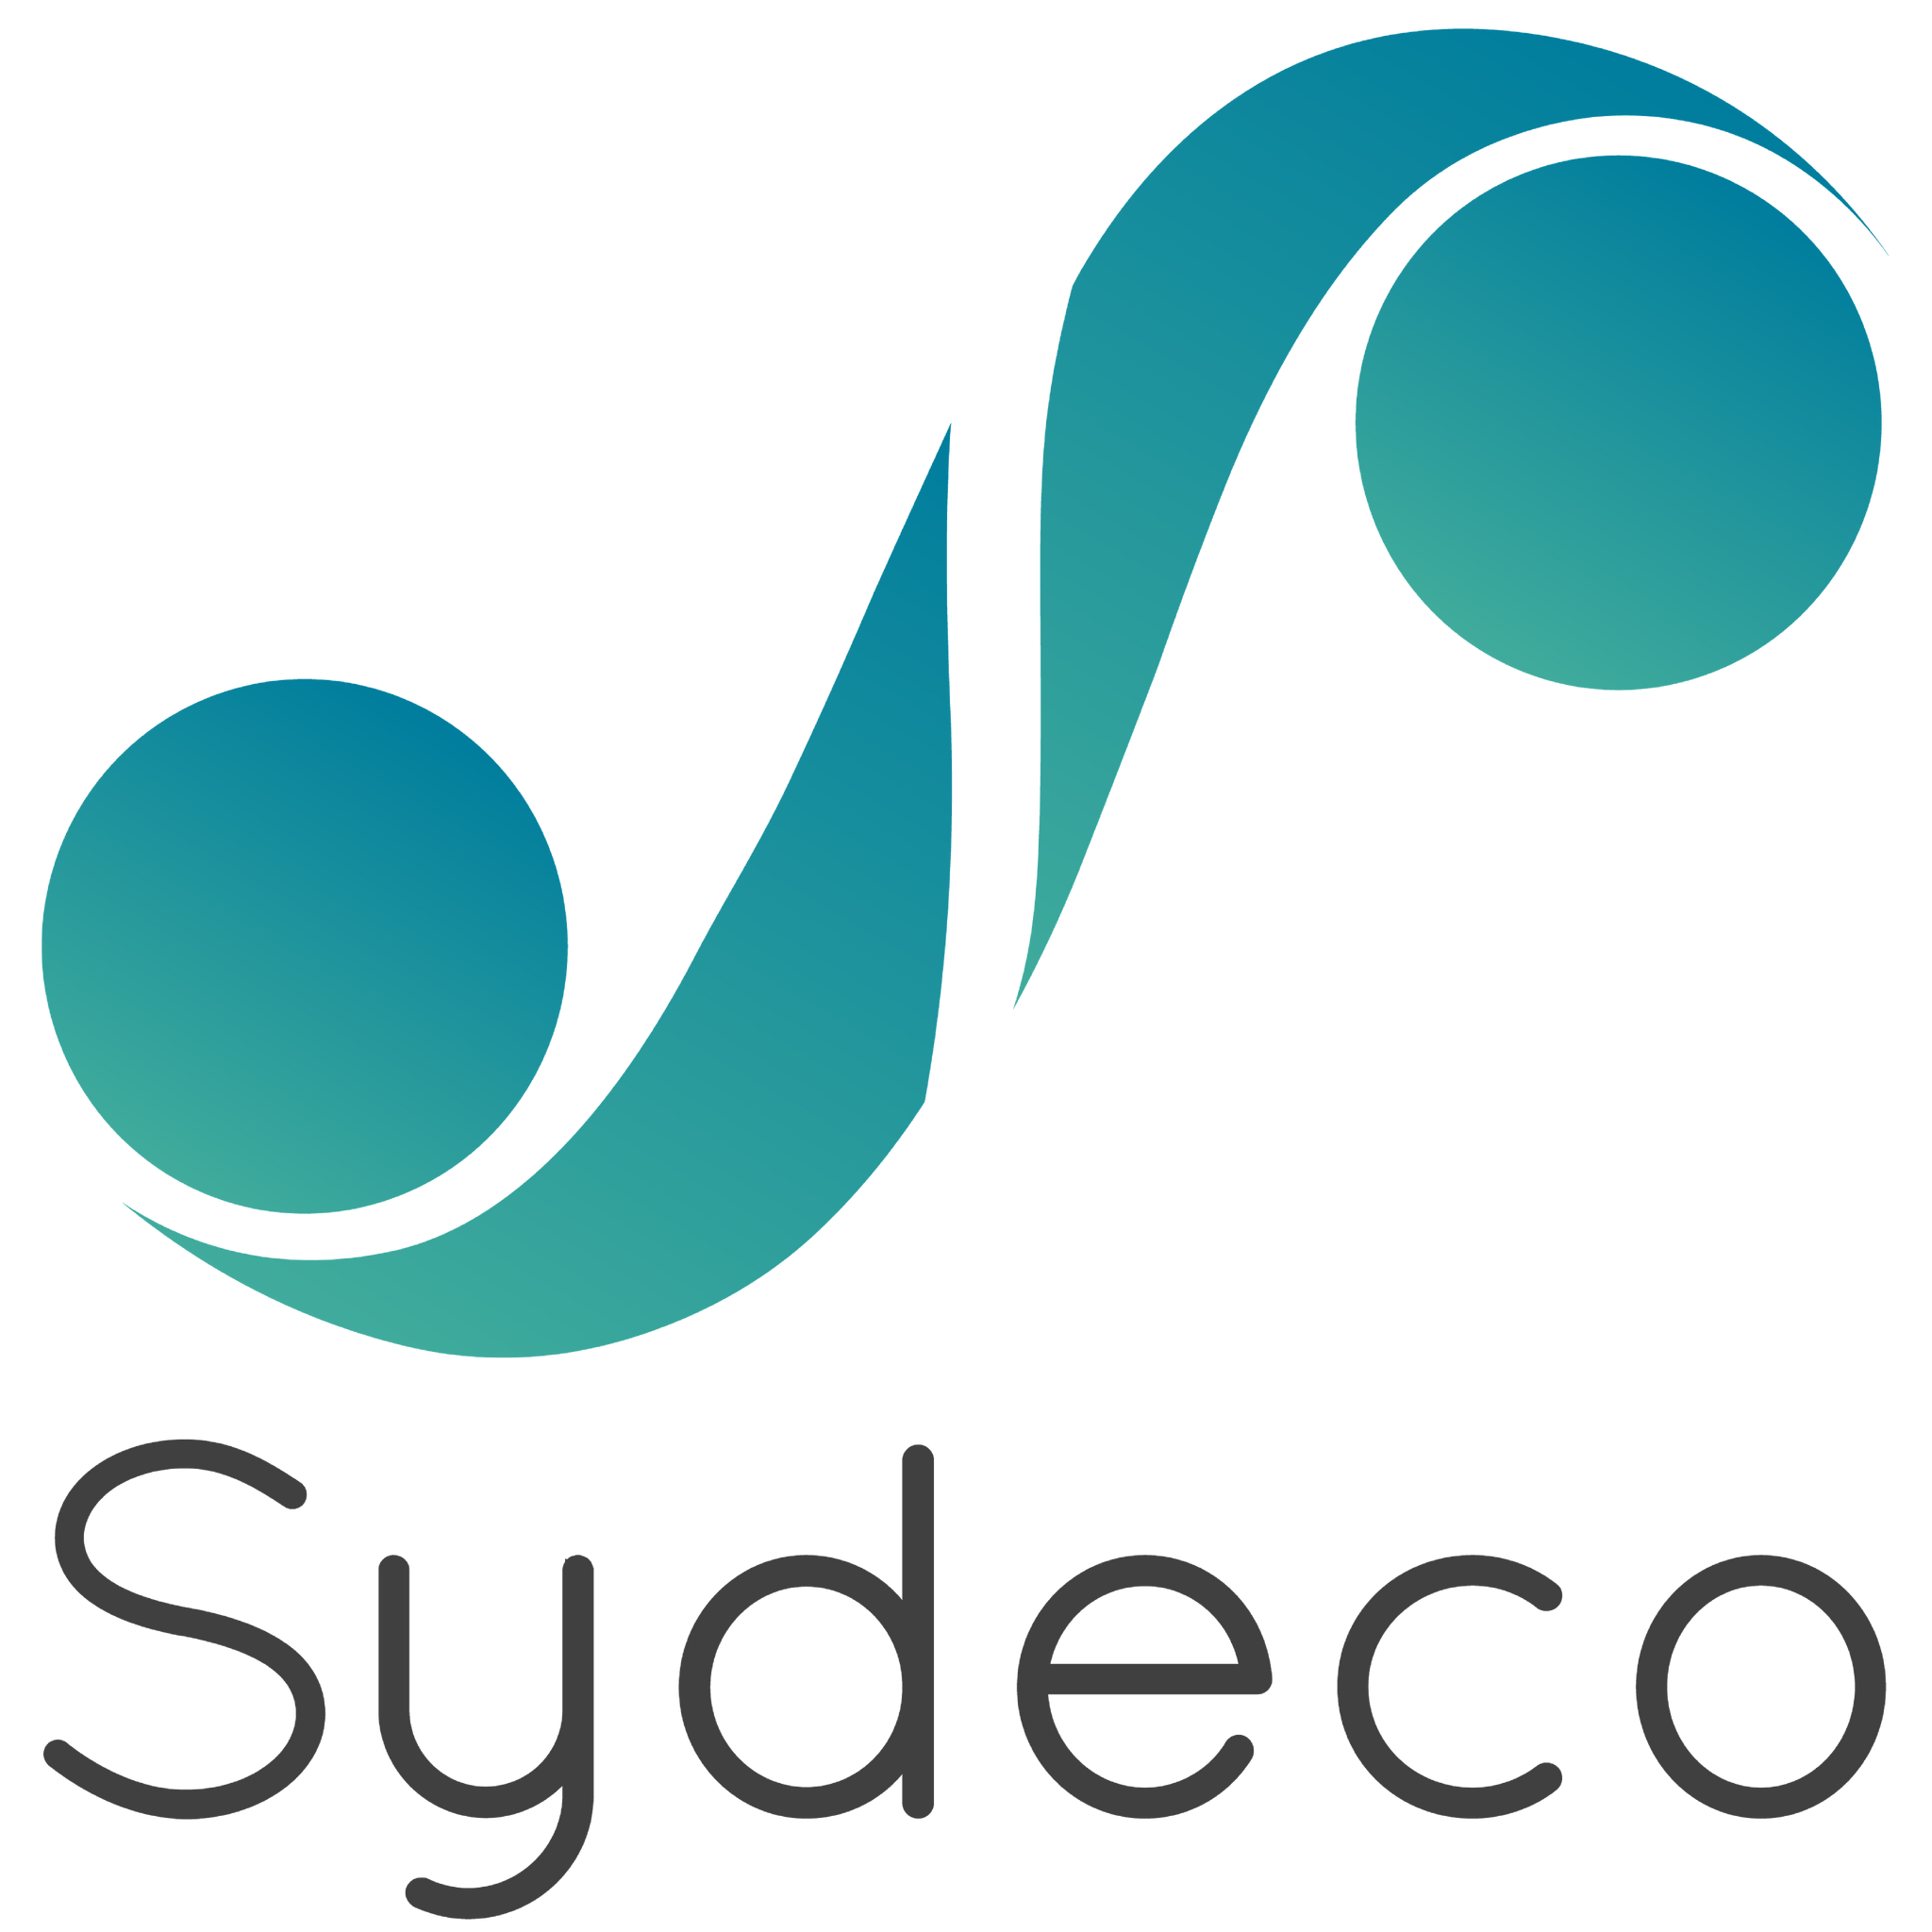 PT Sydeco